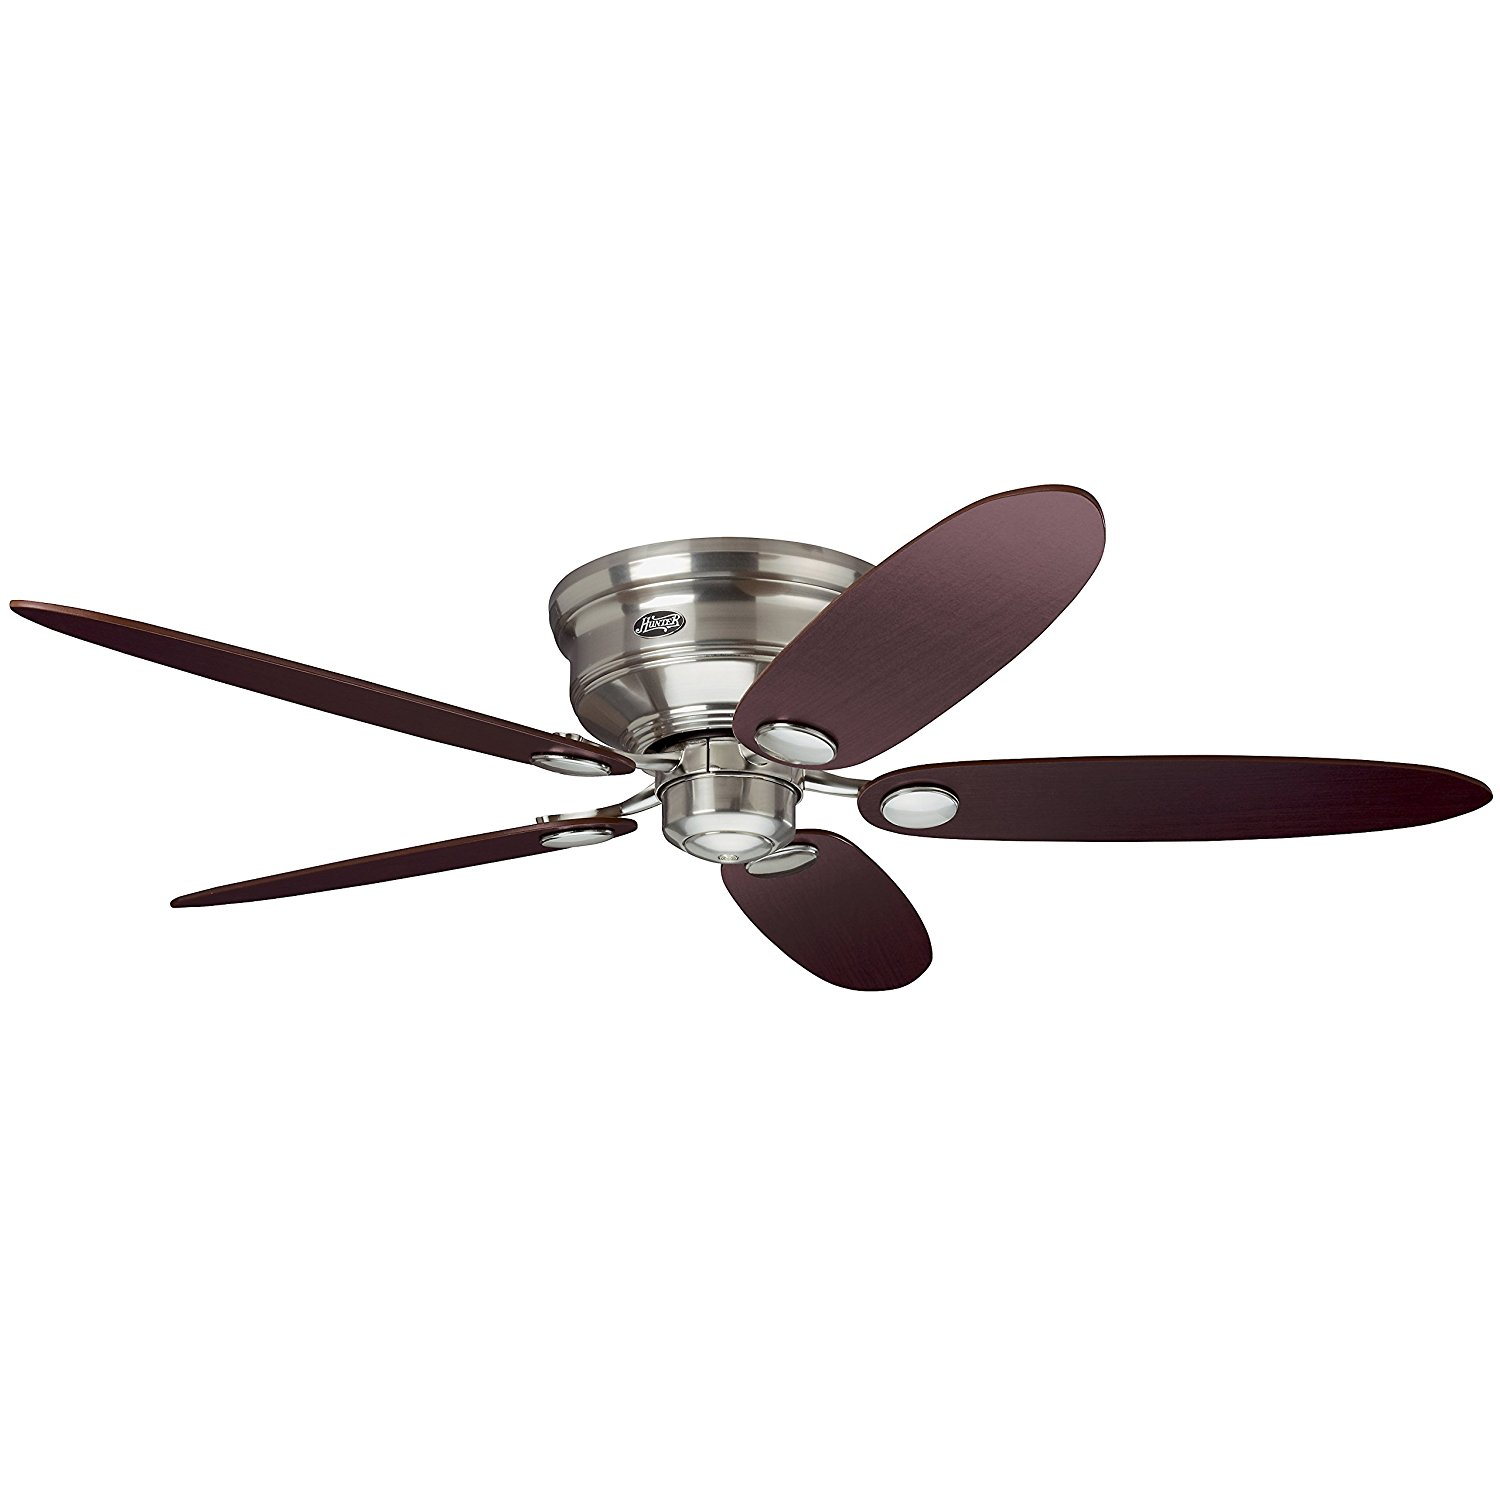 Ventilador de techo Hunter 24372 Low Profile